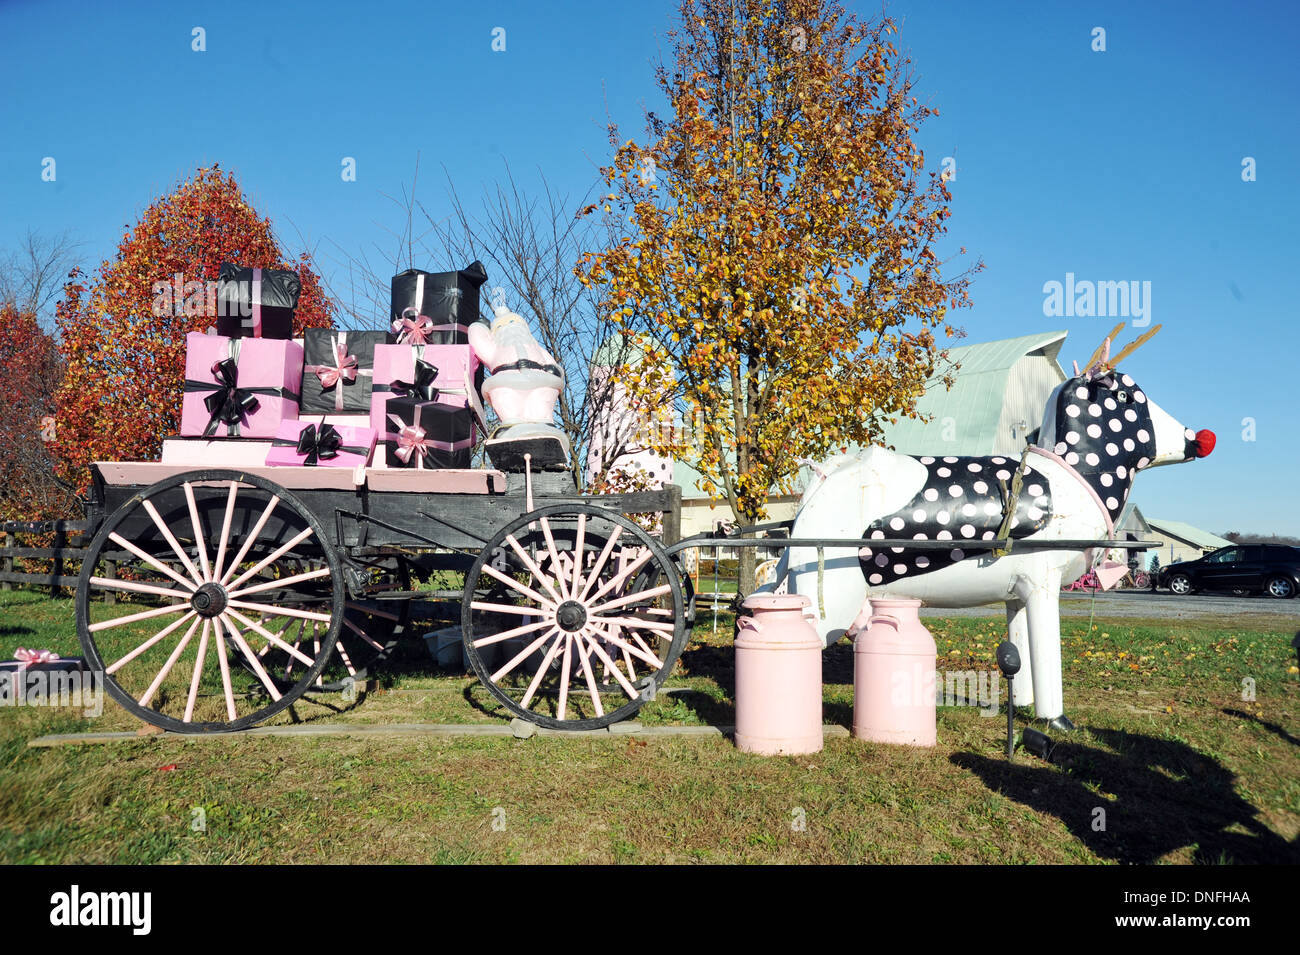 Artsy wagon with gifts and polk-a-dot cow with milk cans Virginia, Polk-a-dot cow, cow, gifts, wagon, farm wagon, milk cans, - Stock Image